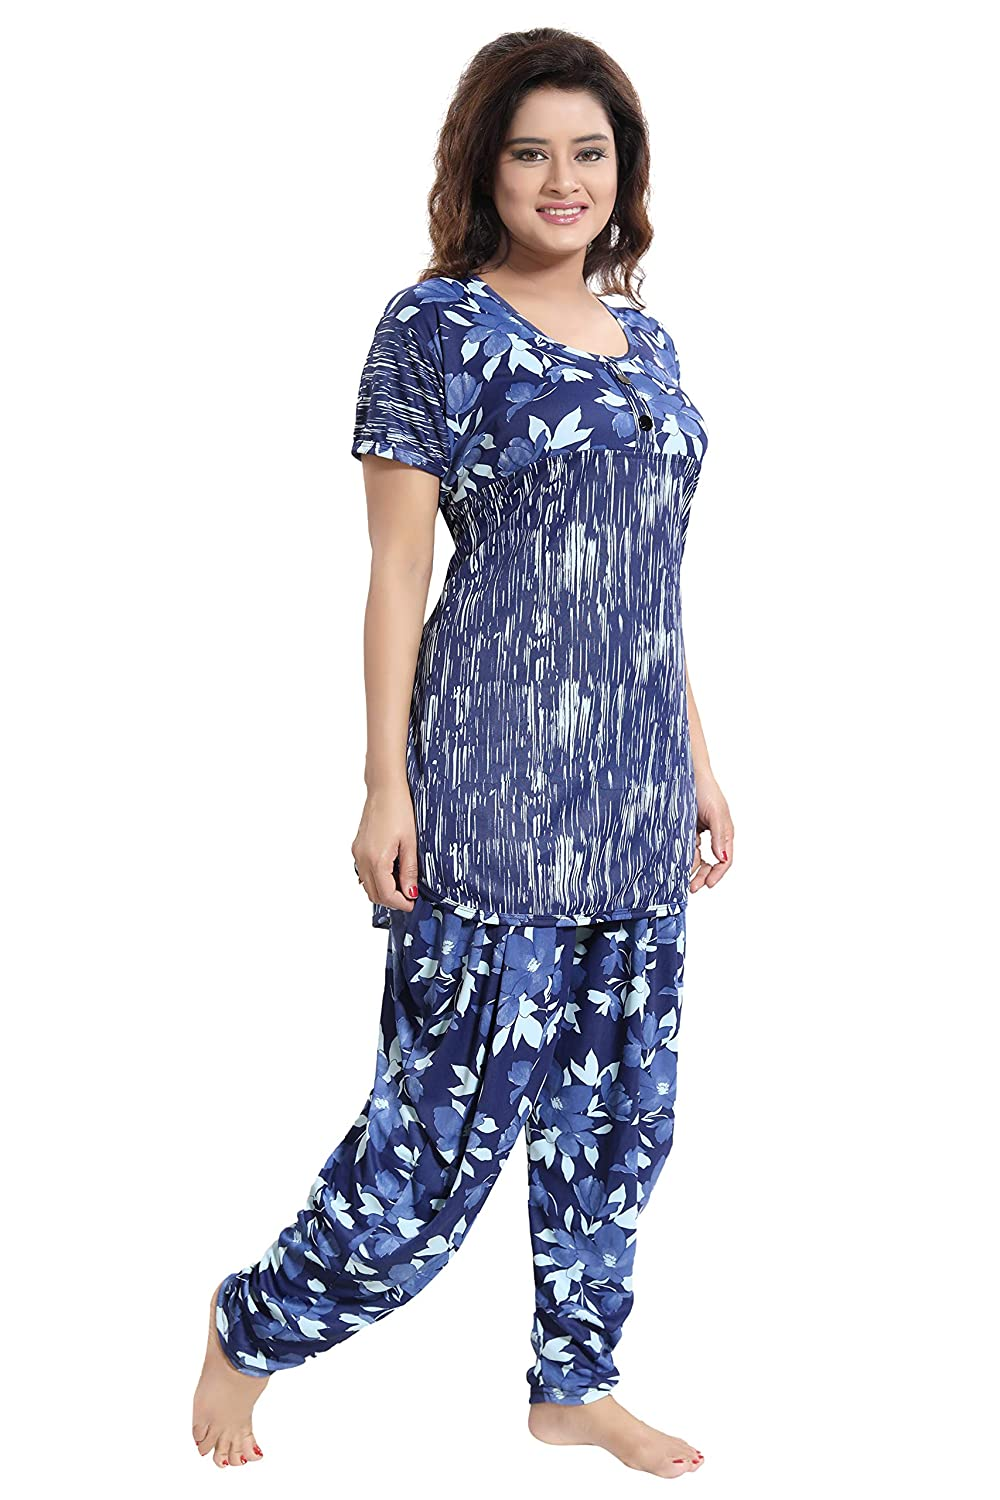 54d2fb3a12 TUCUTE Top and Dhoti Style Bottom Night Suit Nighty Nightdress Night Gown  for Women and Girls Size  L XL XXL  Amazon.in  Clothing   Accessories